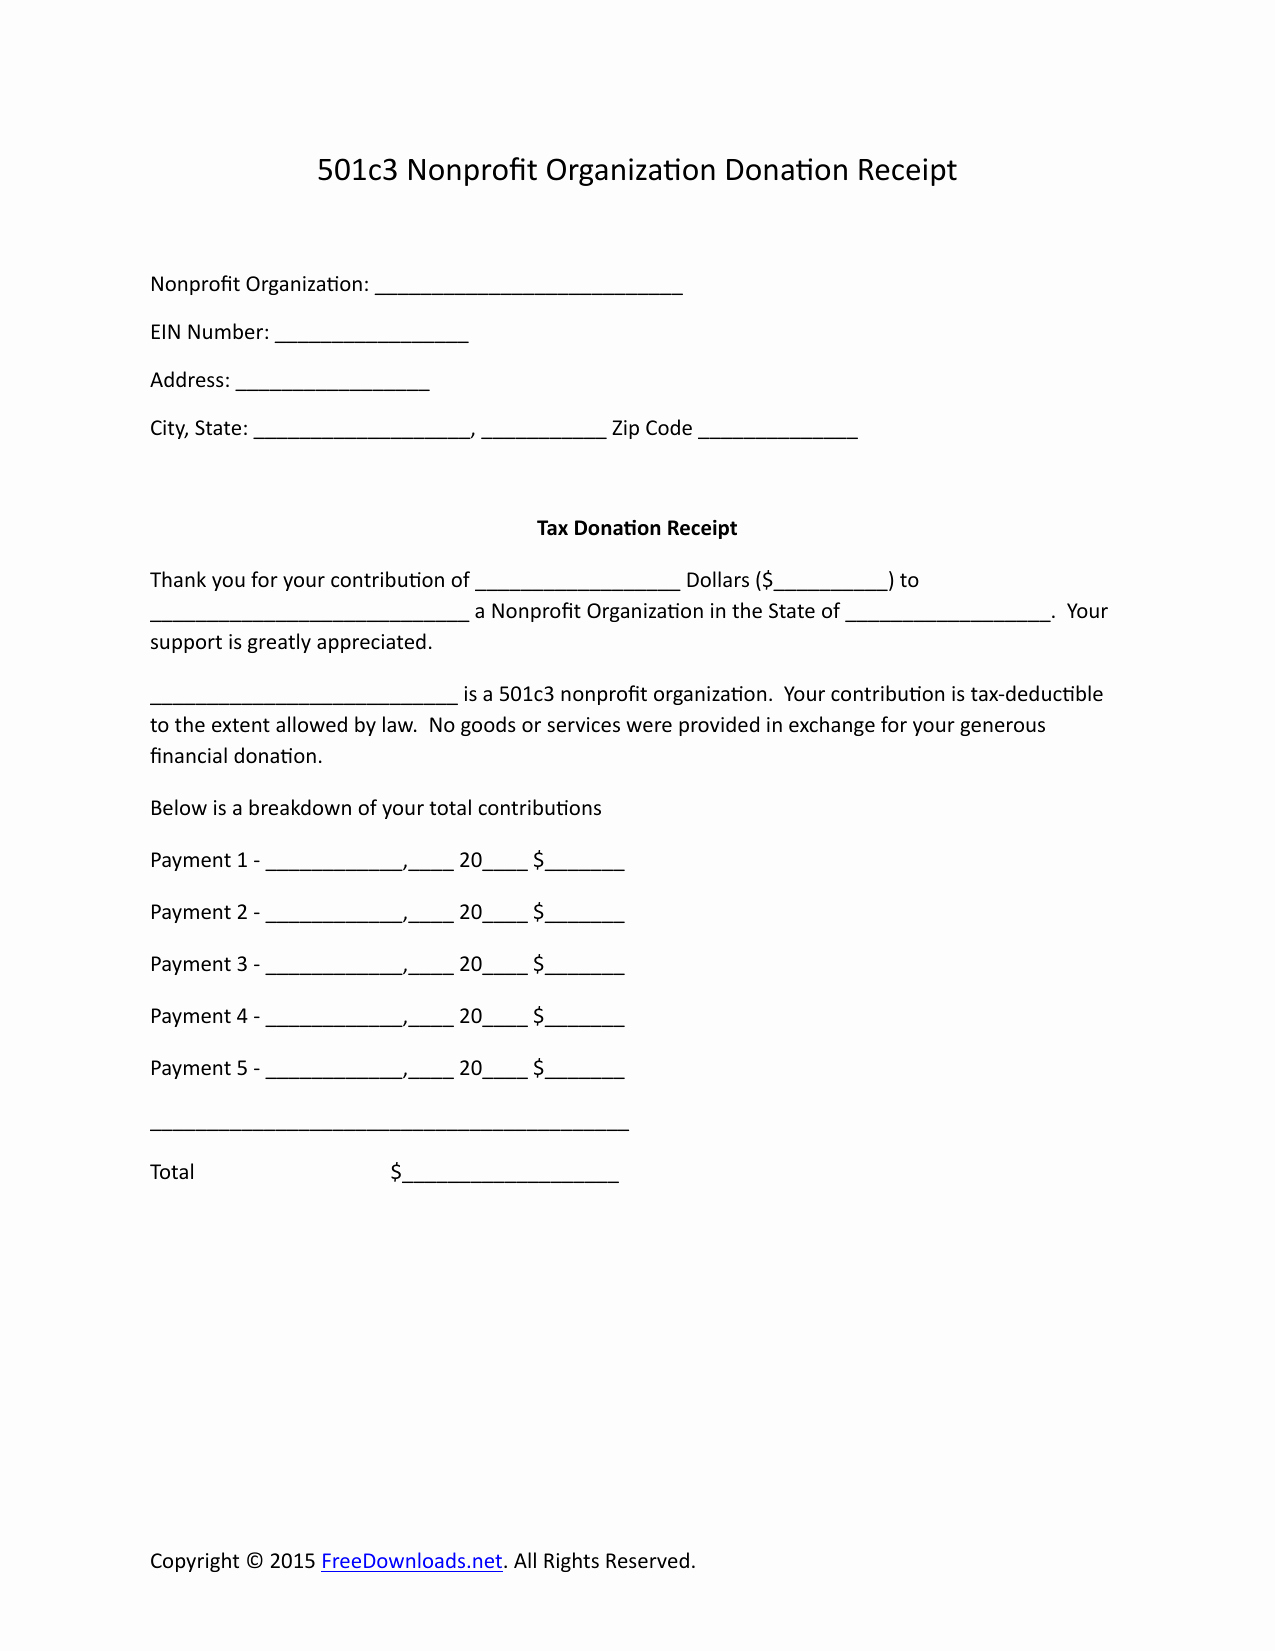 Donation Receipt for Non Profit Inspirational Download 501c3 Donation Receipt Letter for Tax Purposes